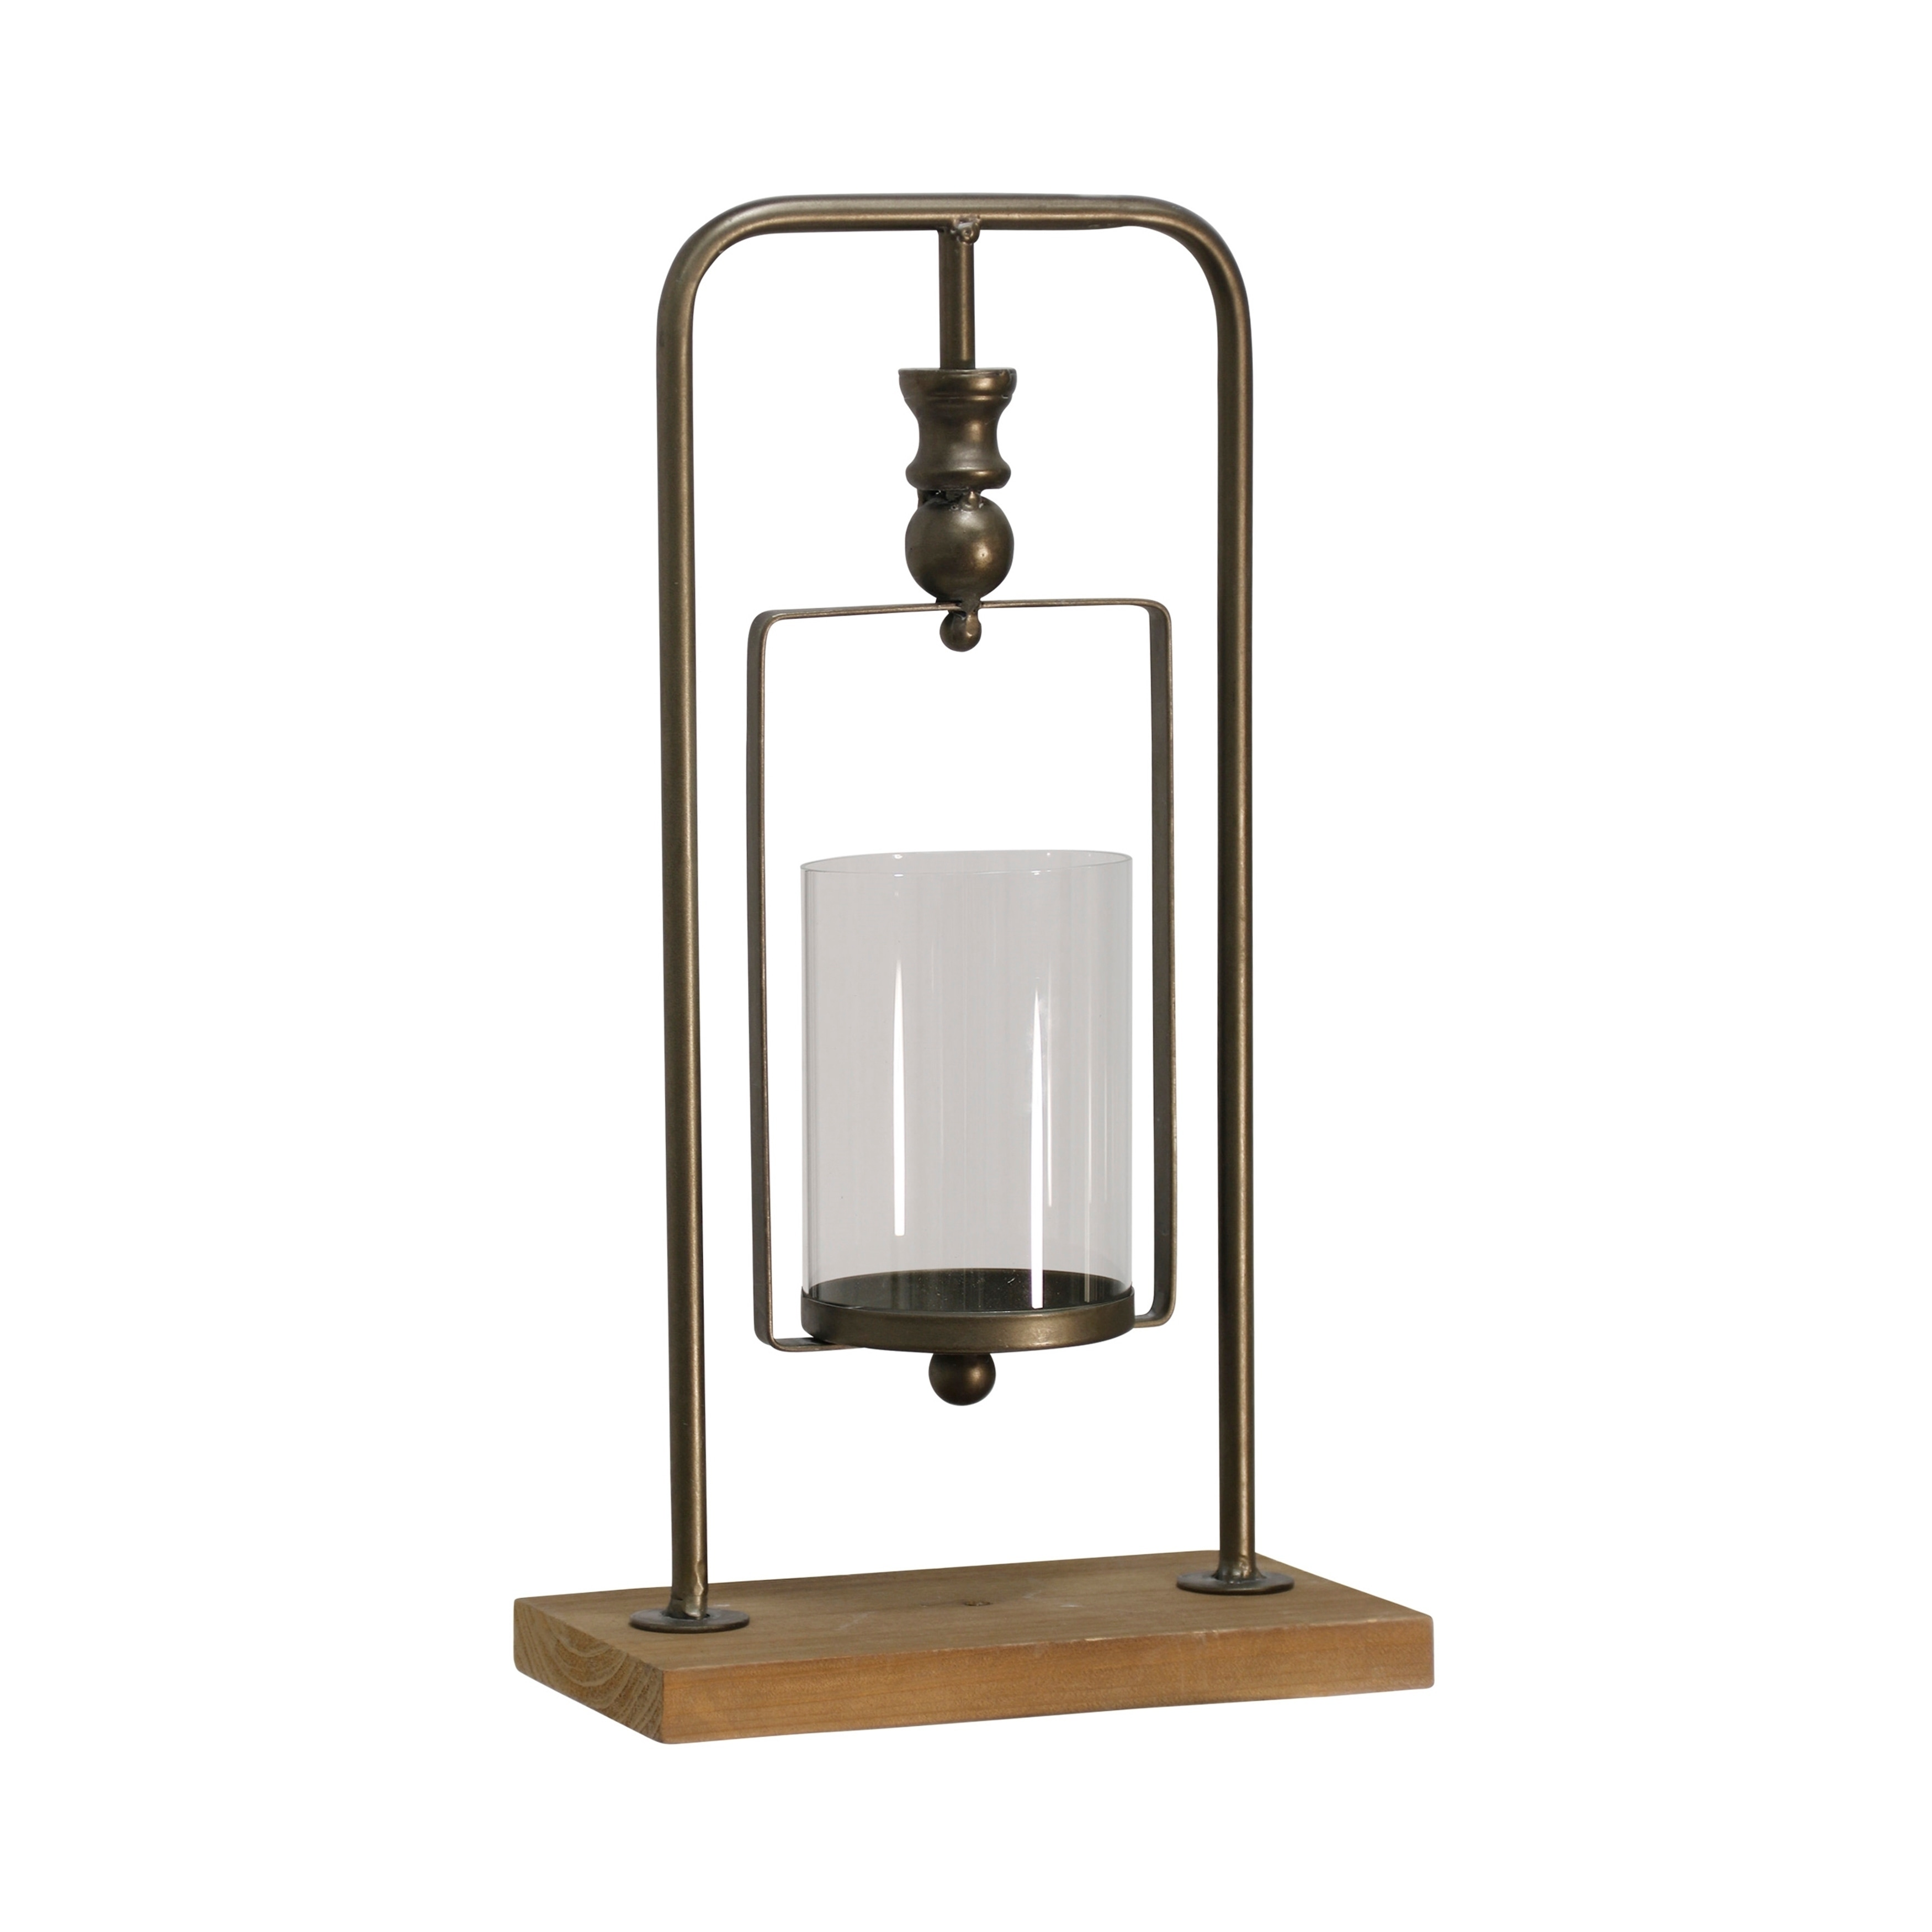 Natural Gold Tall Suspended Cylinder Glass Candle Holder on Metal Bracket with Knob Detail and Wood Base